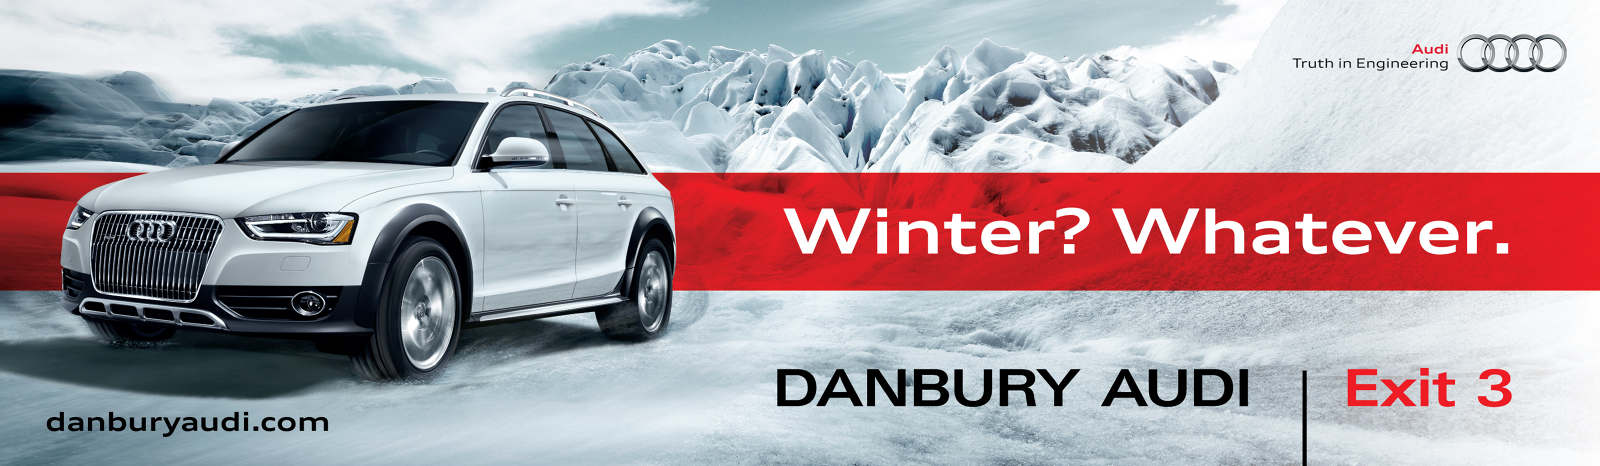 Danbury Audi Tom Kidwell ArtCreative Director - Audi danbury